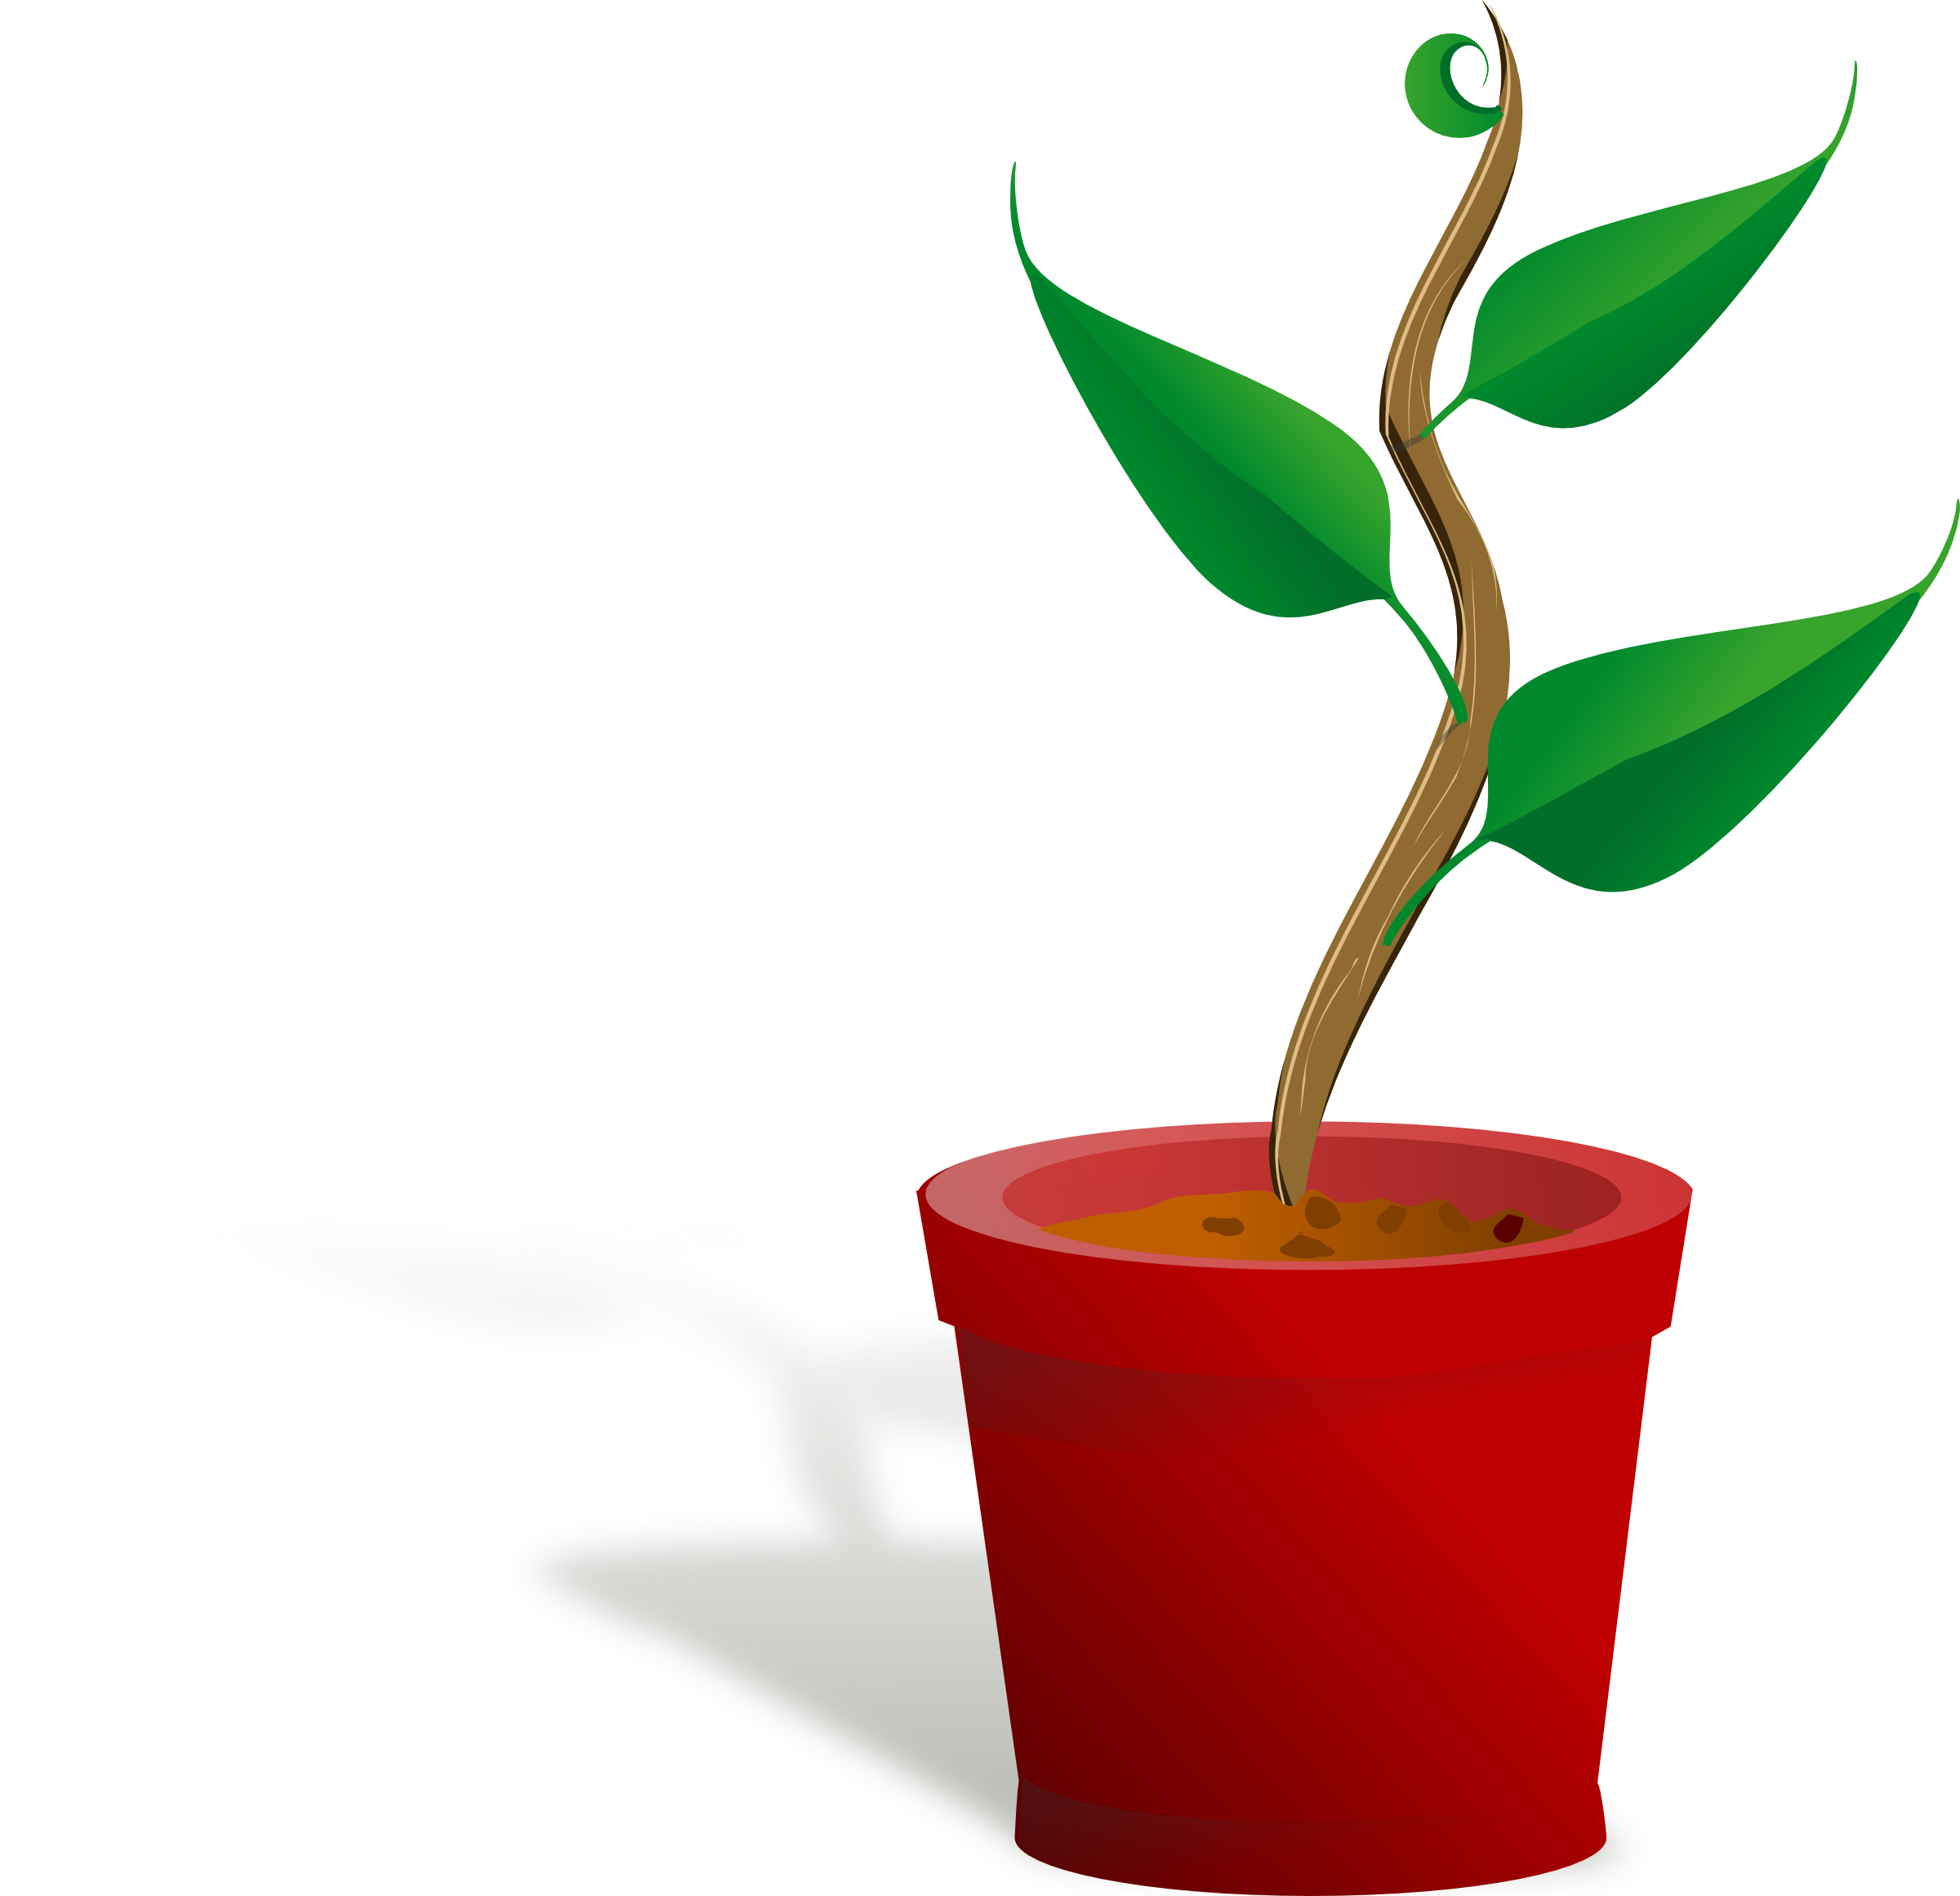 Plant clipart growing stage Growing Stages Free growing%20plant%20stages Plant